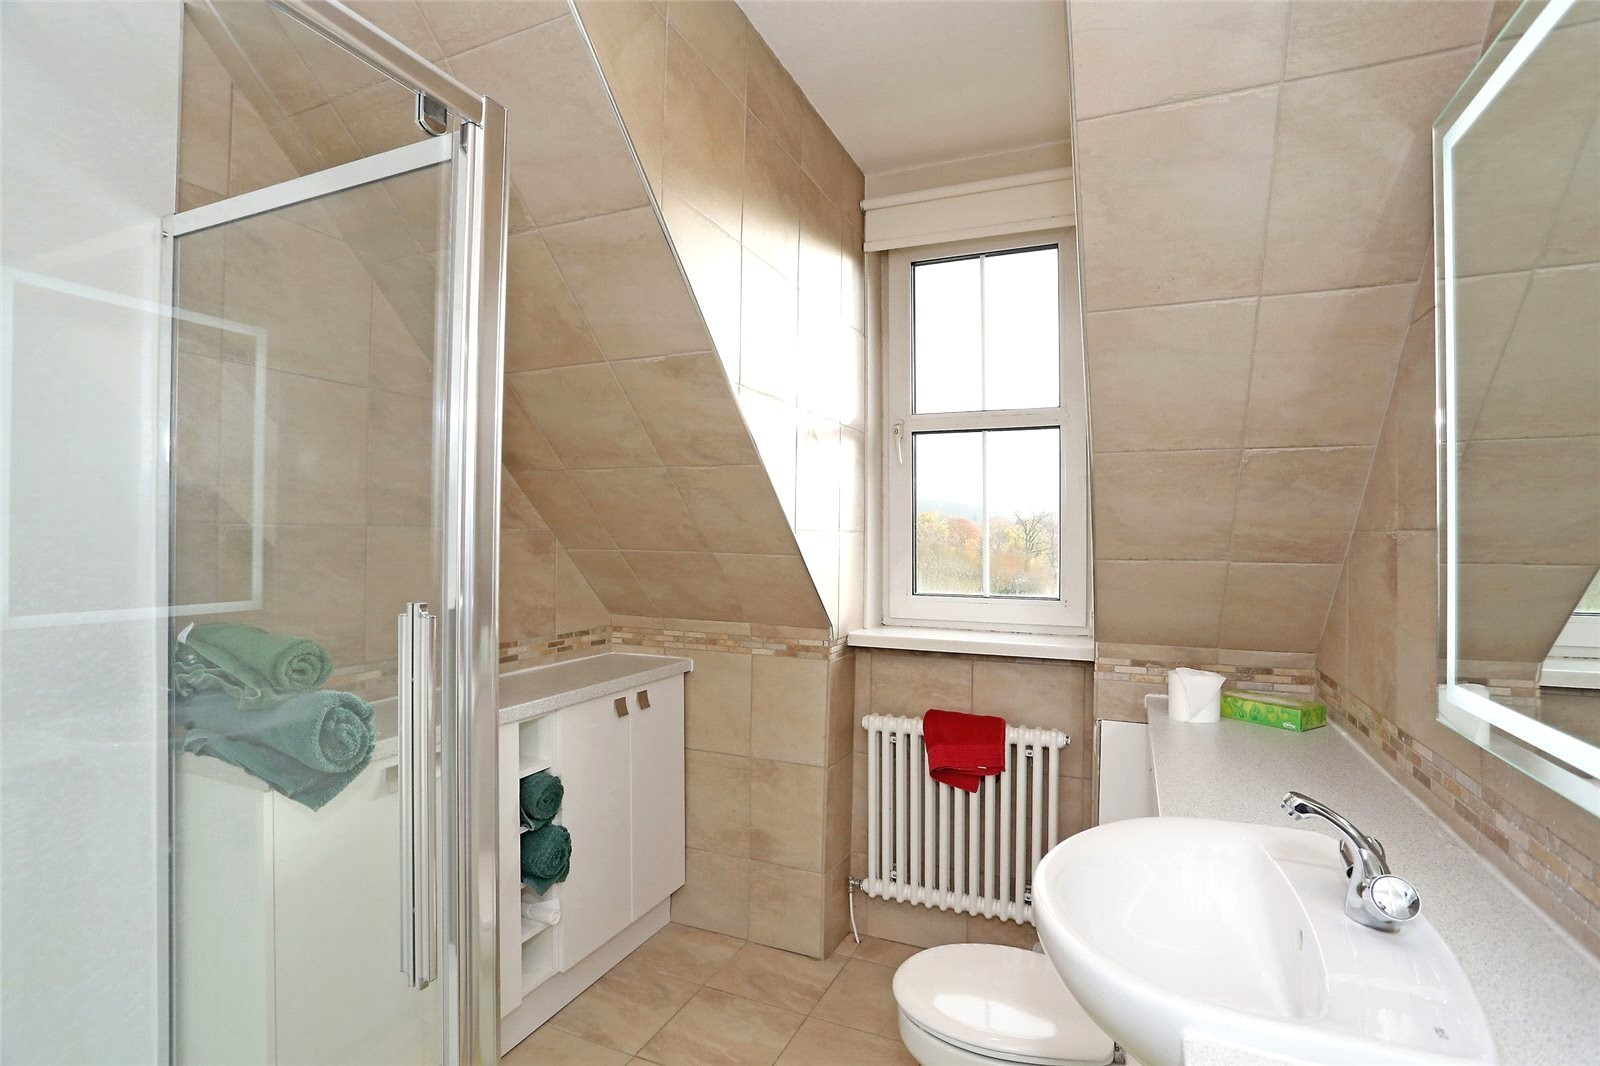 Guest House in the heart of Banchory with Airbnb Opportunity - Image 7